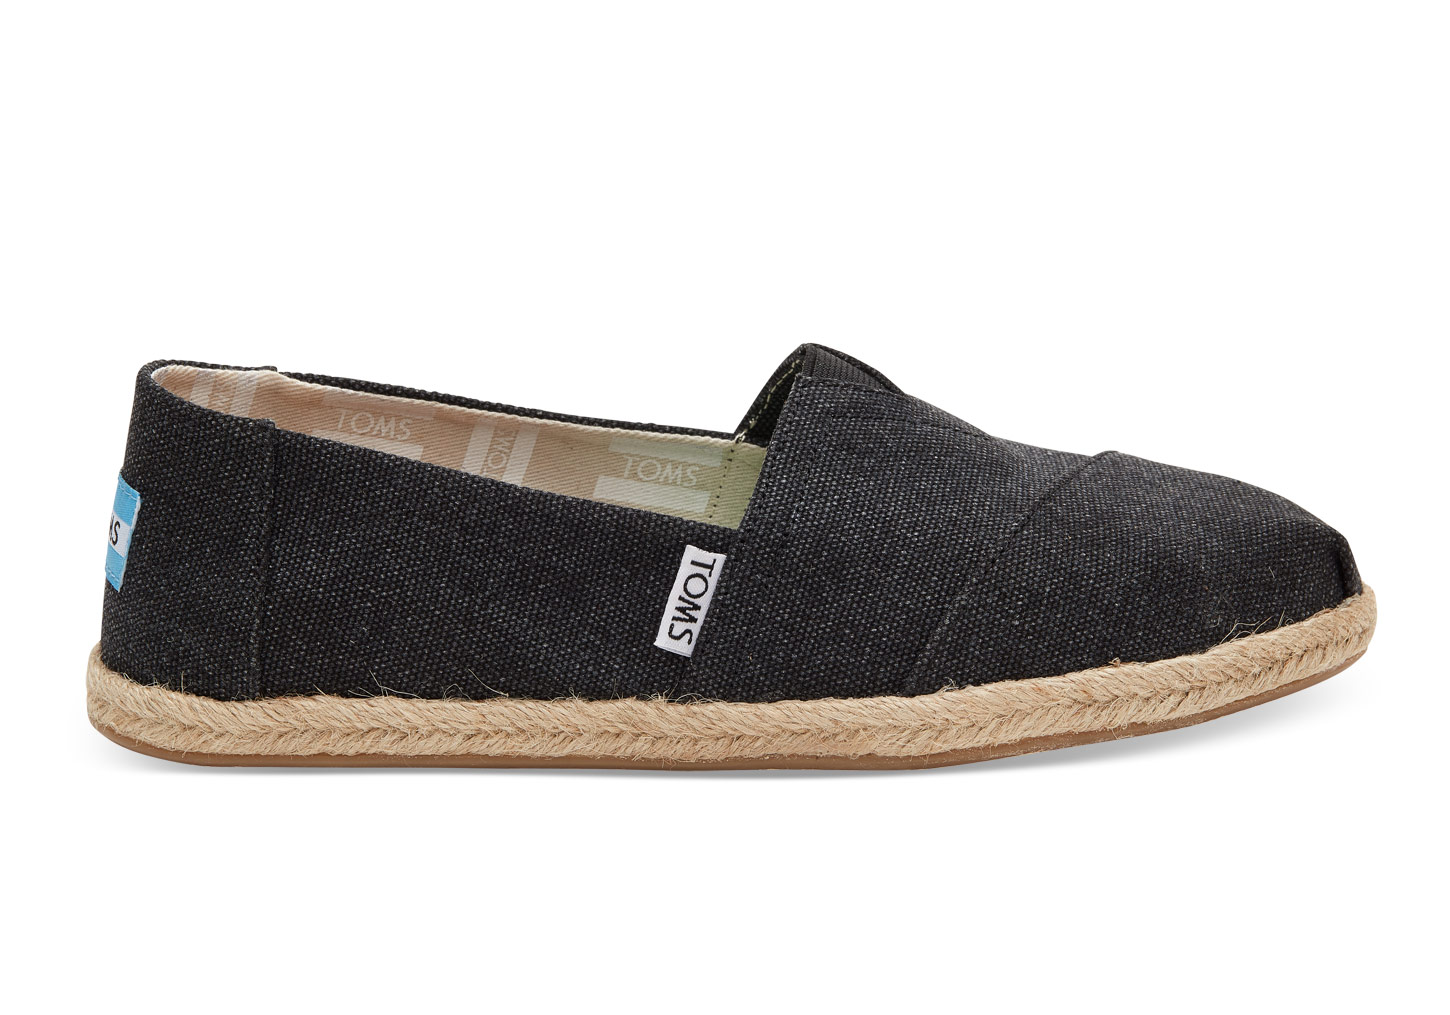 TOMS Womens Black Washed Canvas